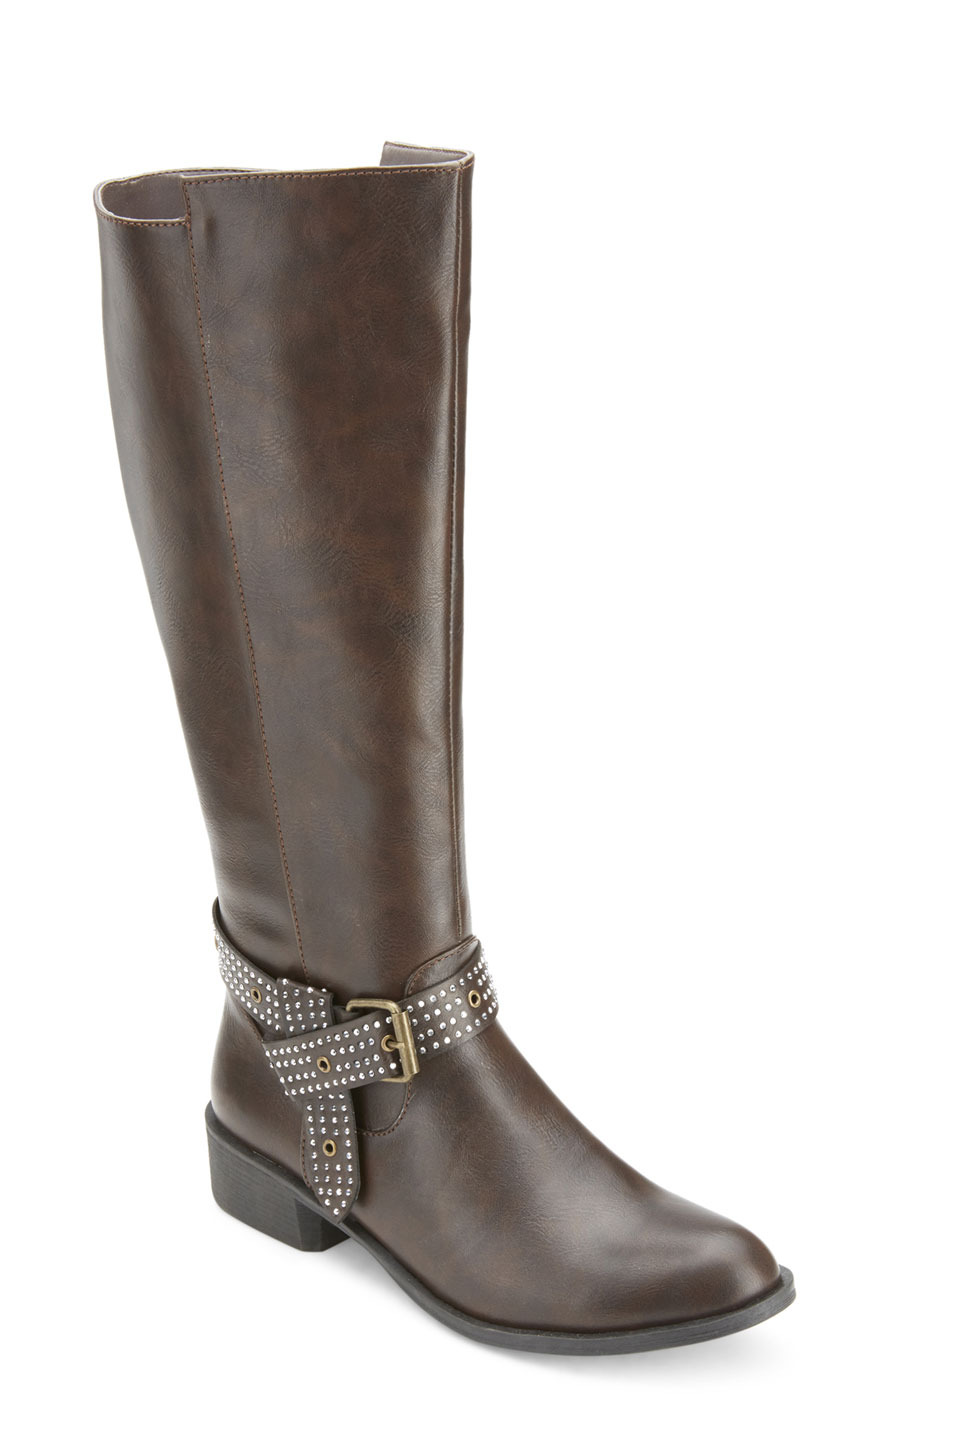 Whittier Studded Buckle Strap Riding Boots in Brown